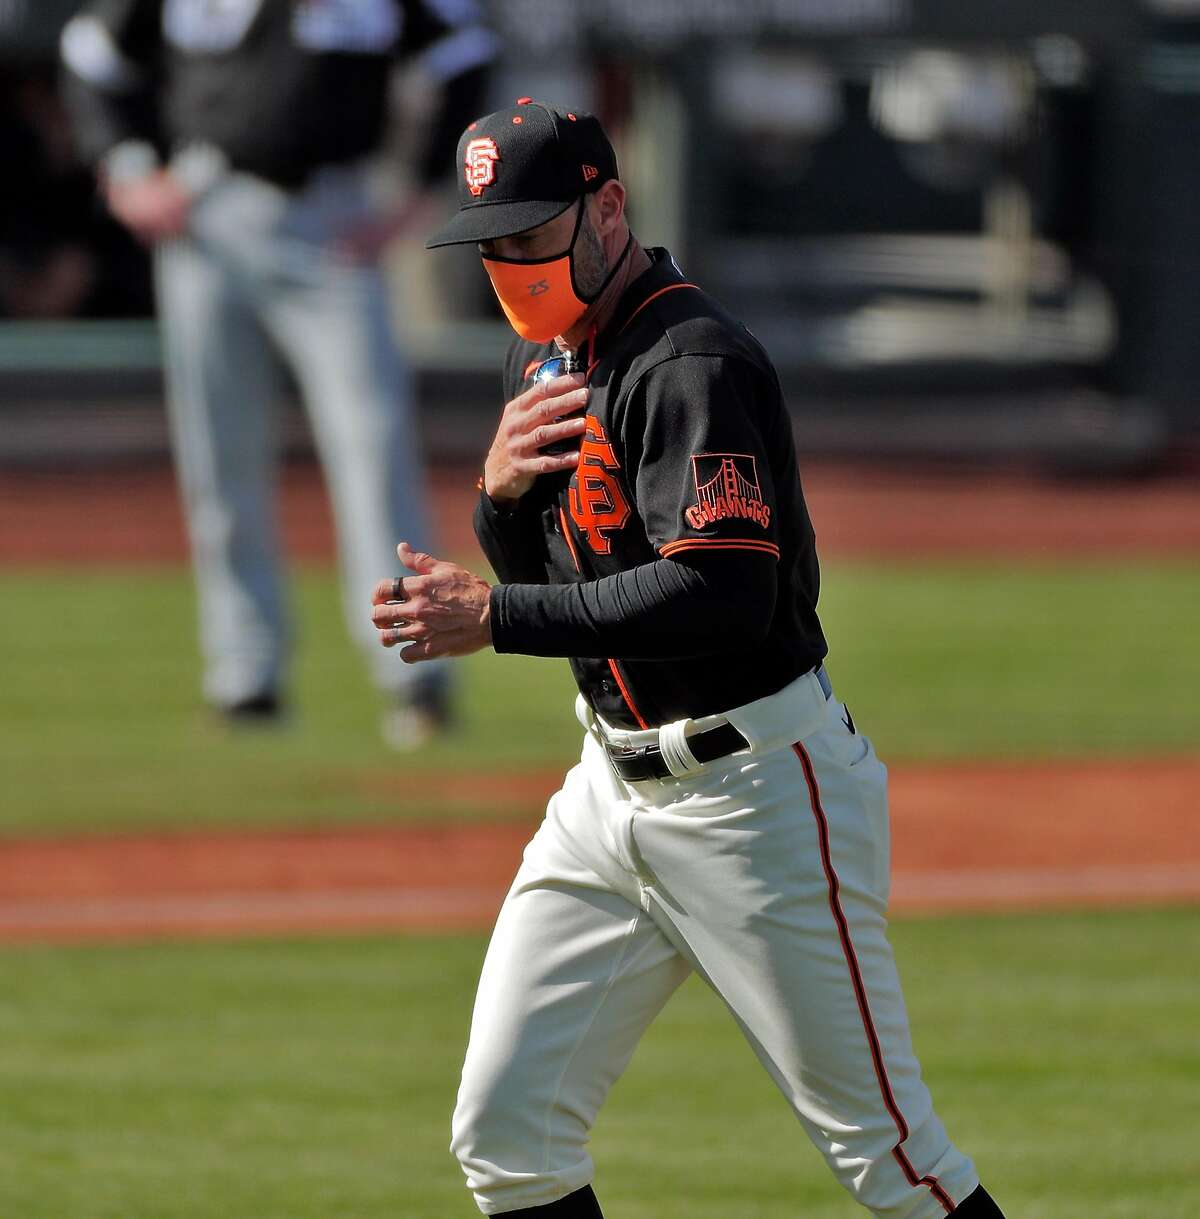 Giants manager Gabe Kapler jogs back to the dugout after a pitching change in the sixth inning as the San Francisco Giants played the Chicago White Sox in a spring training game at Scottsdale Stadium in Scottsdale, Ariz., on Thursday, March 4, 2021.